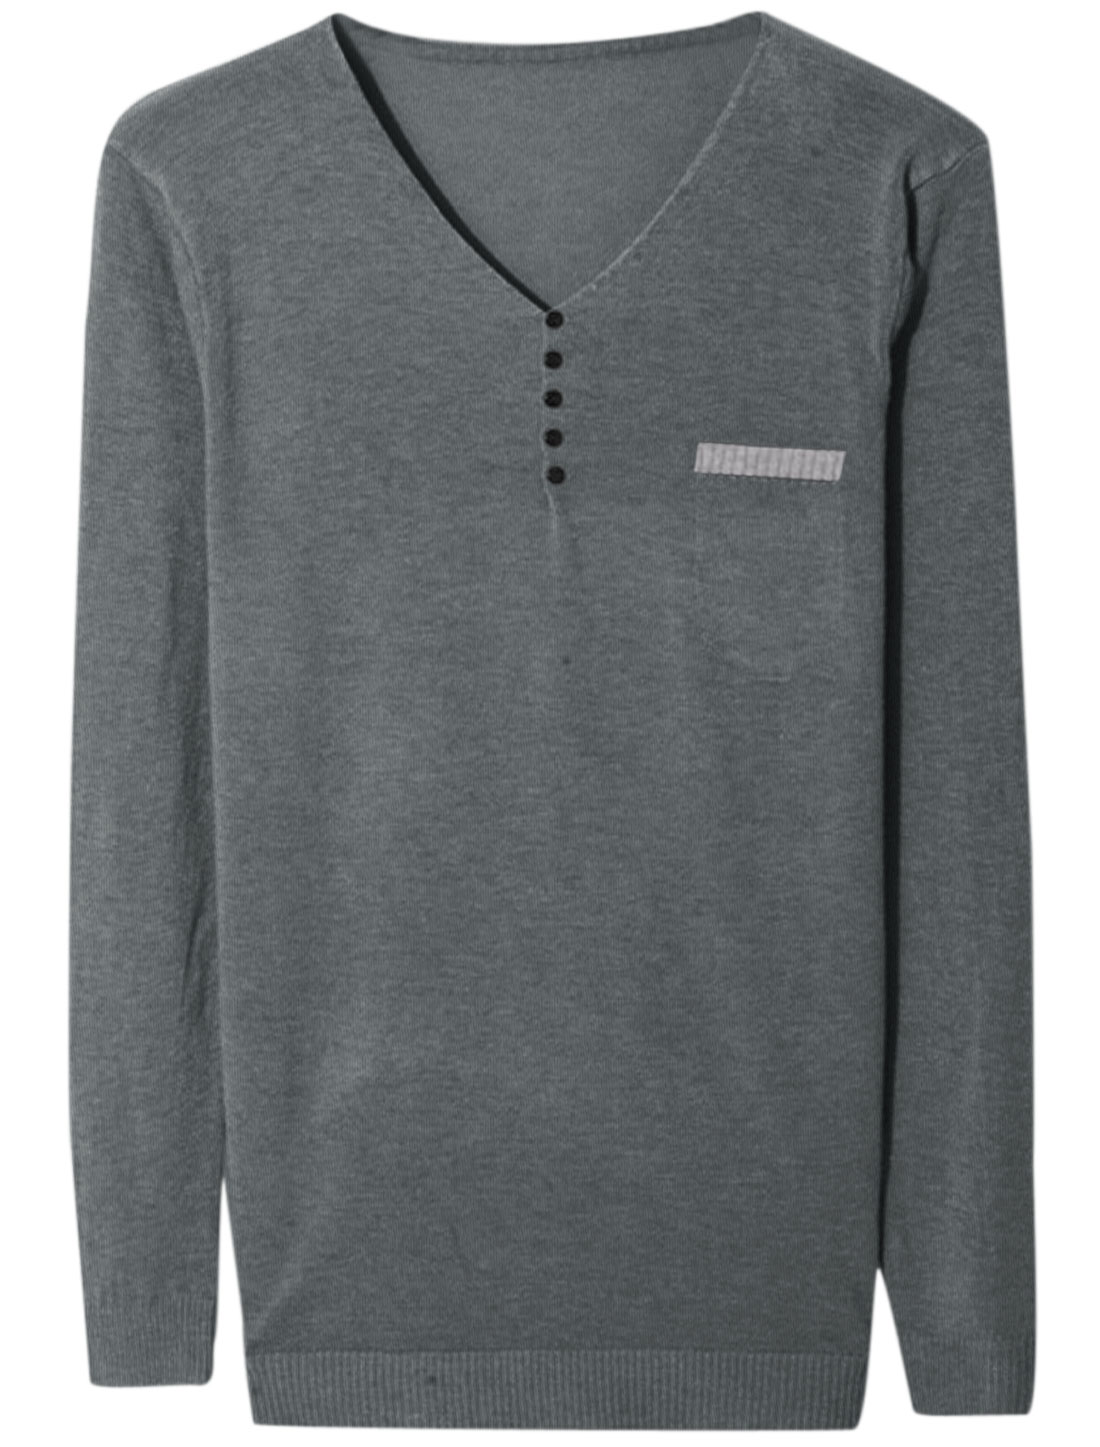 Men V Neck Long Sleeve Buttons Decor Soft Knit Shirt Dark Gray M